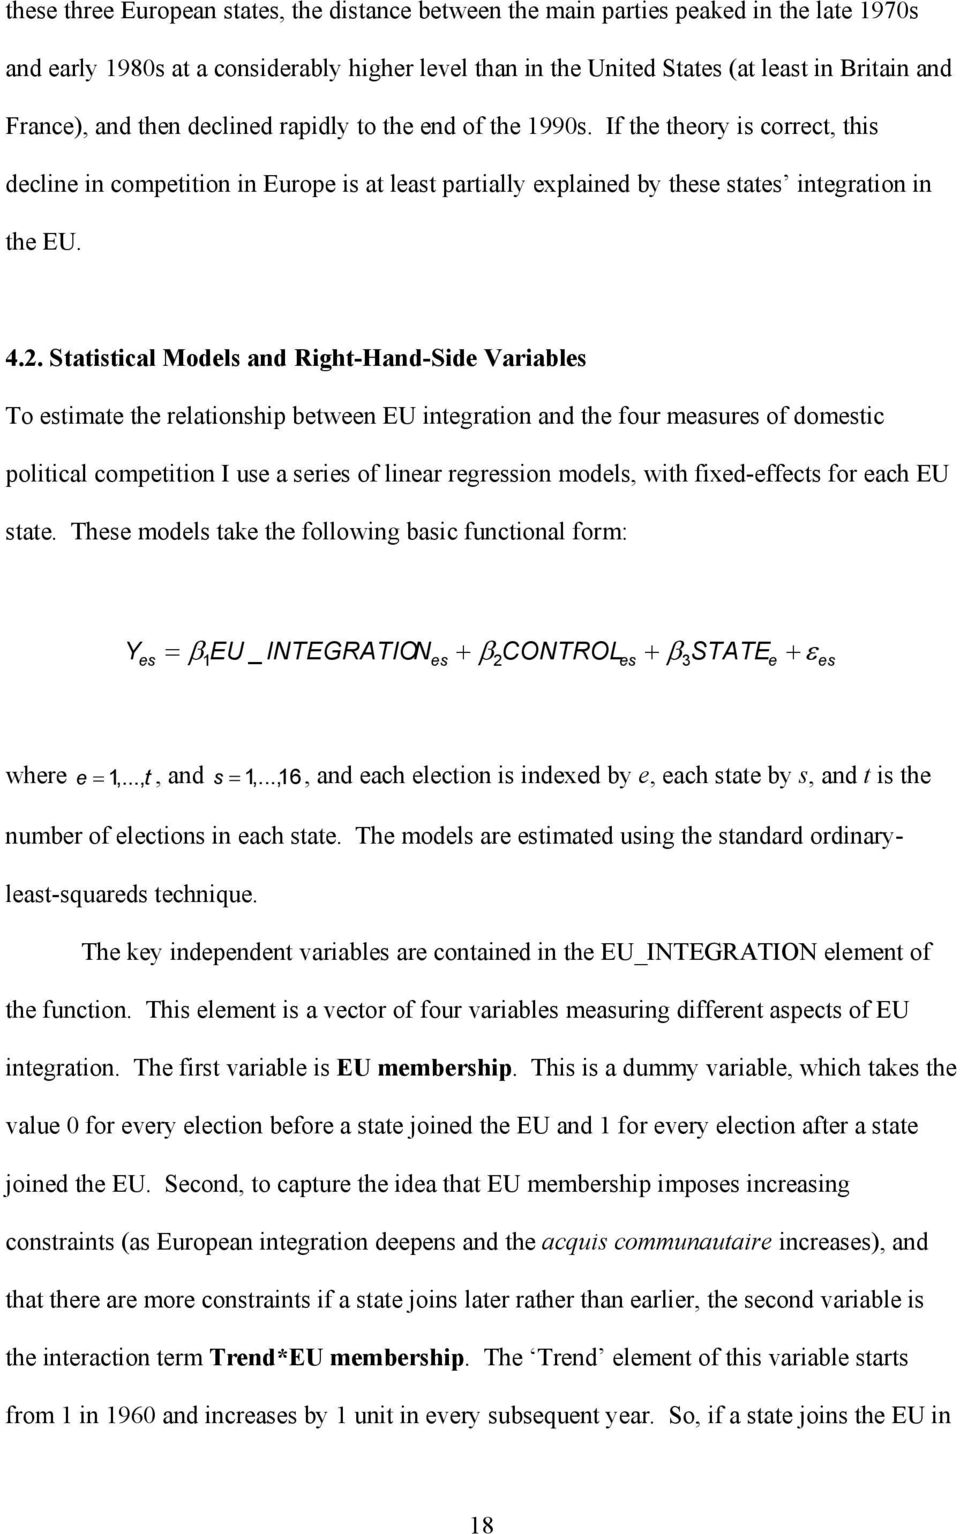 Statistical Models and Right-Hand-Side Variables To estimate the relationship between EU integration and the four measures of domestic political competition I use a series of linear regression